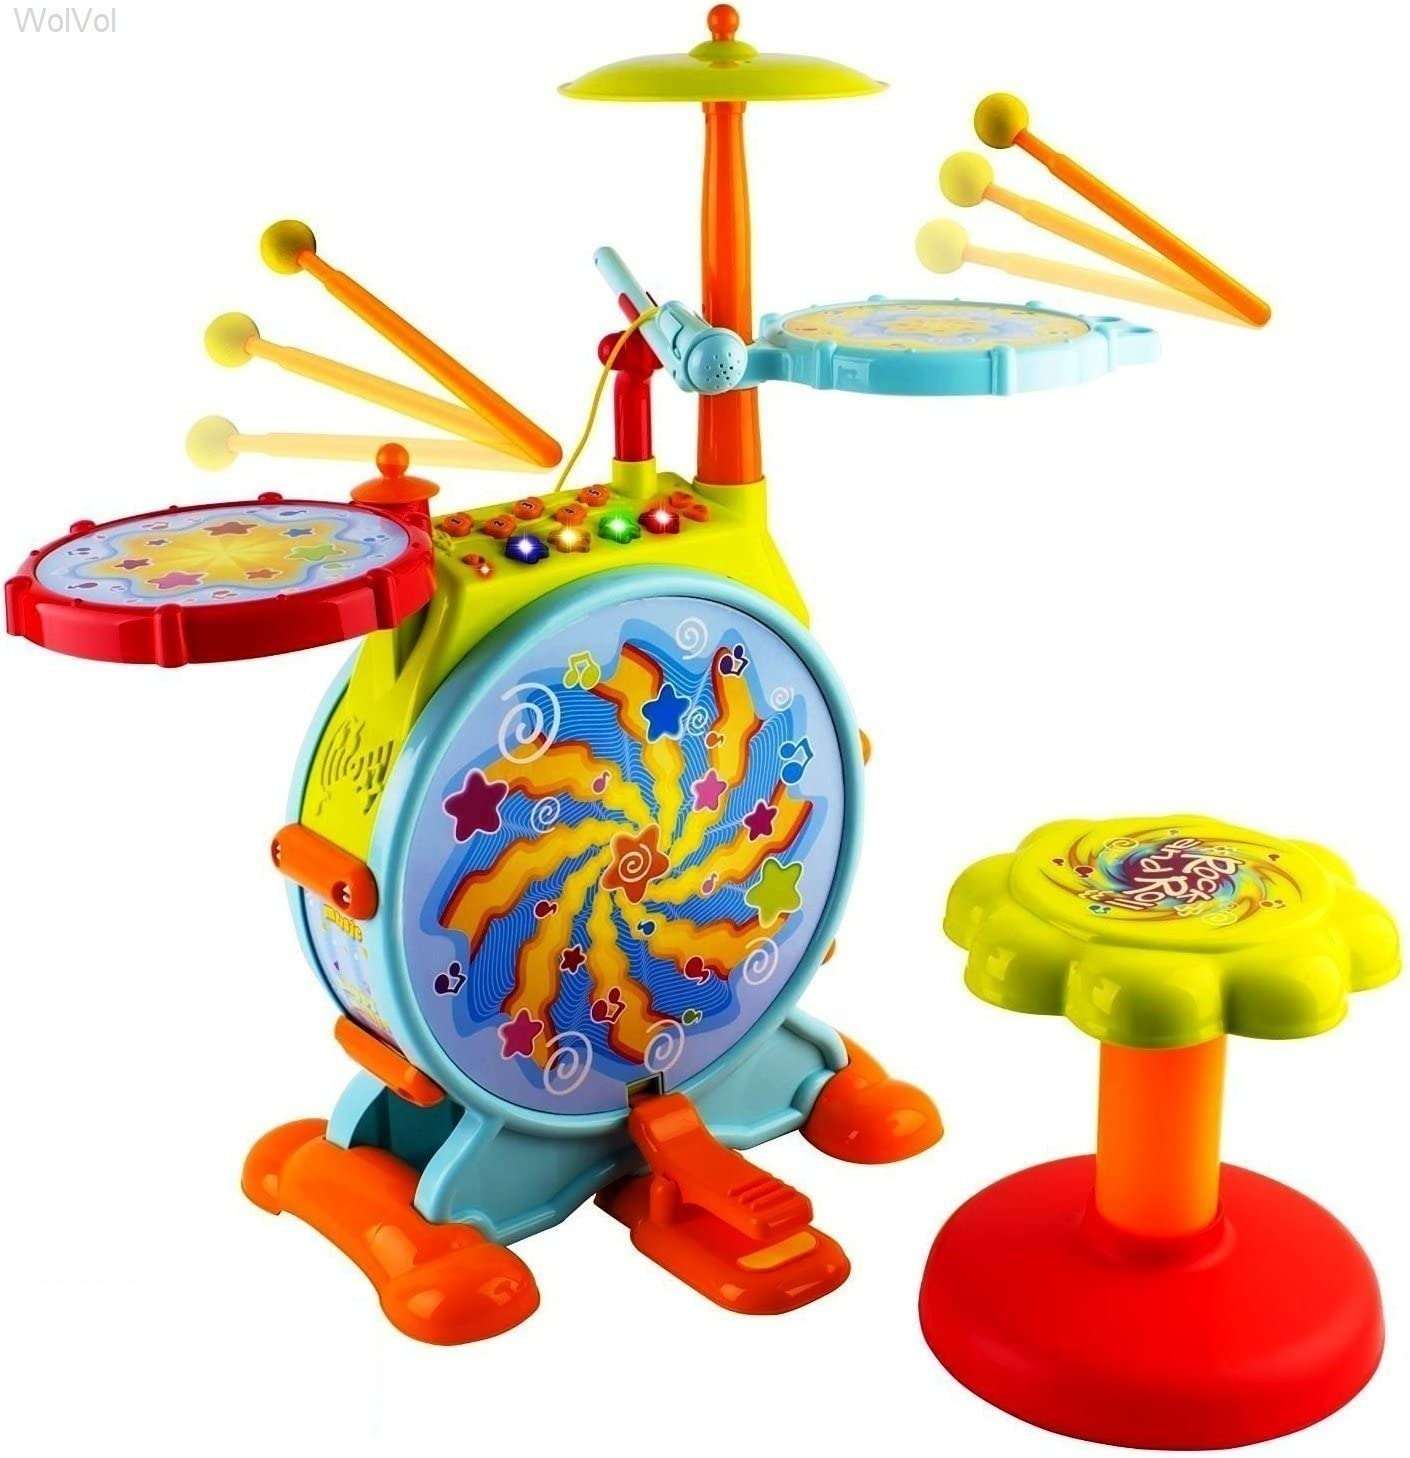 WolVol Electric Big Toy Best Toddler Drum Set for Kids